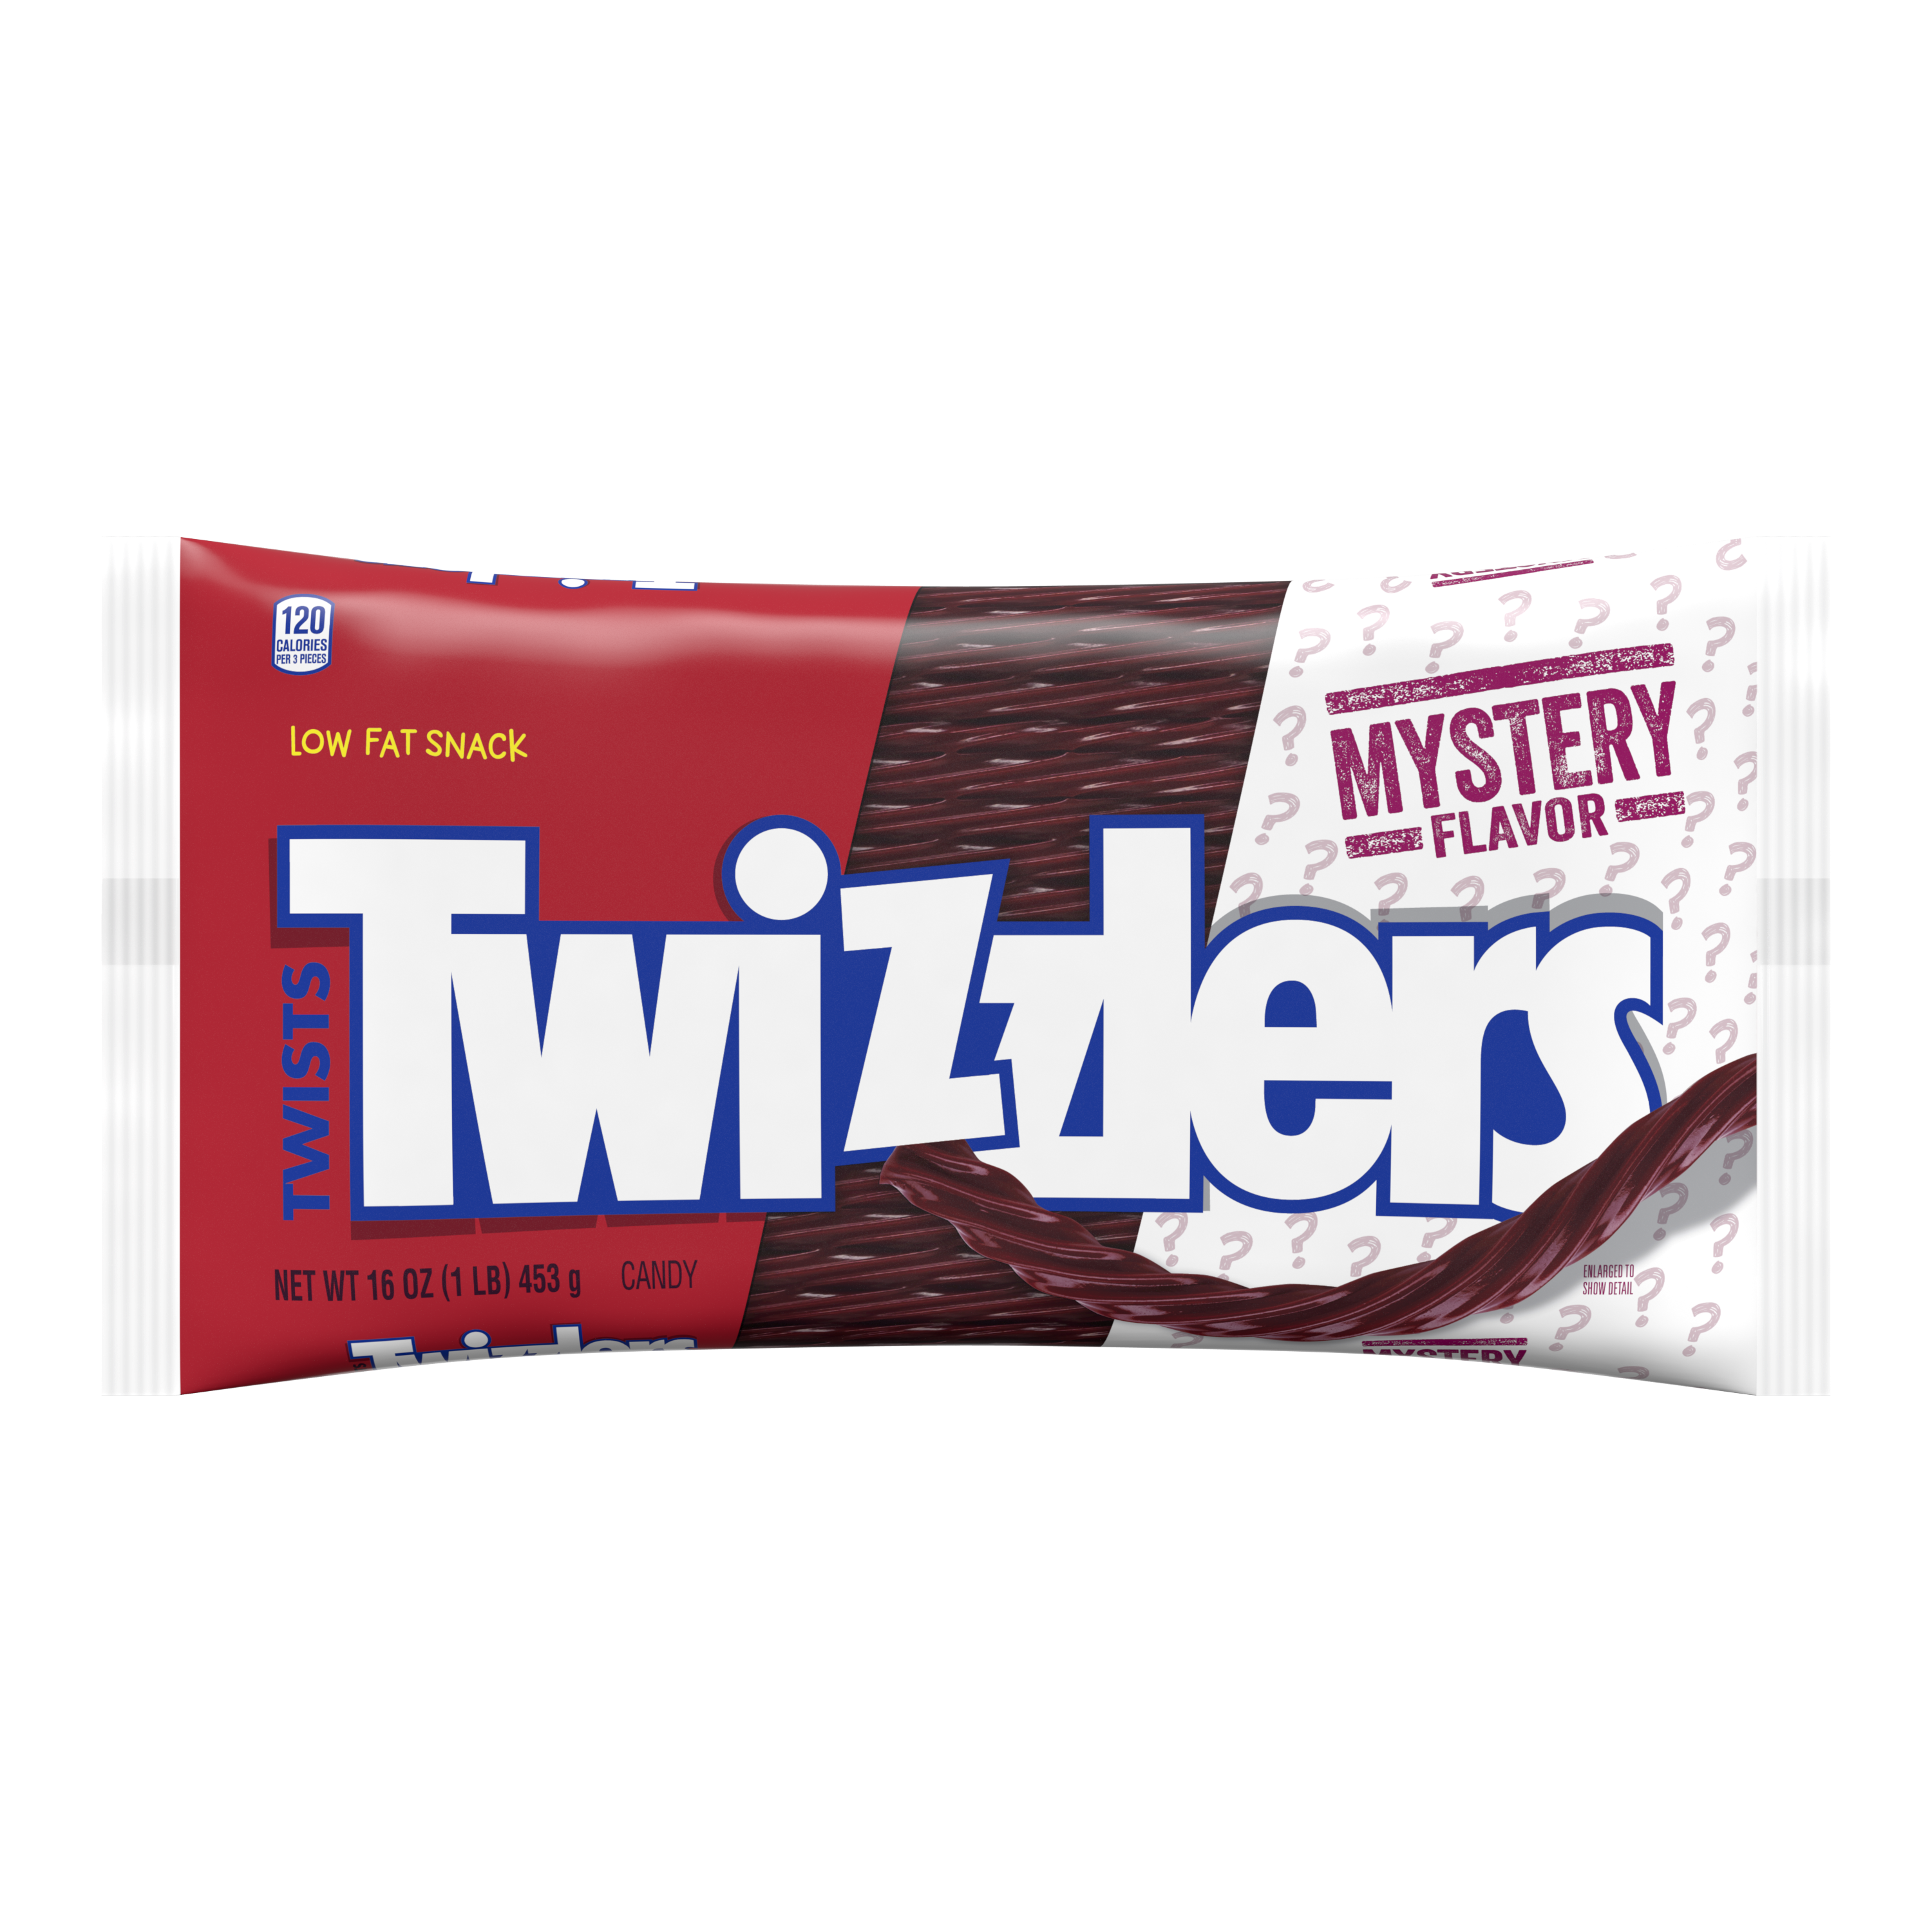 TWIZZLERS Twists Mystery Flavor Candy, 16 oz bag - Front of Package